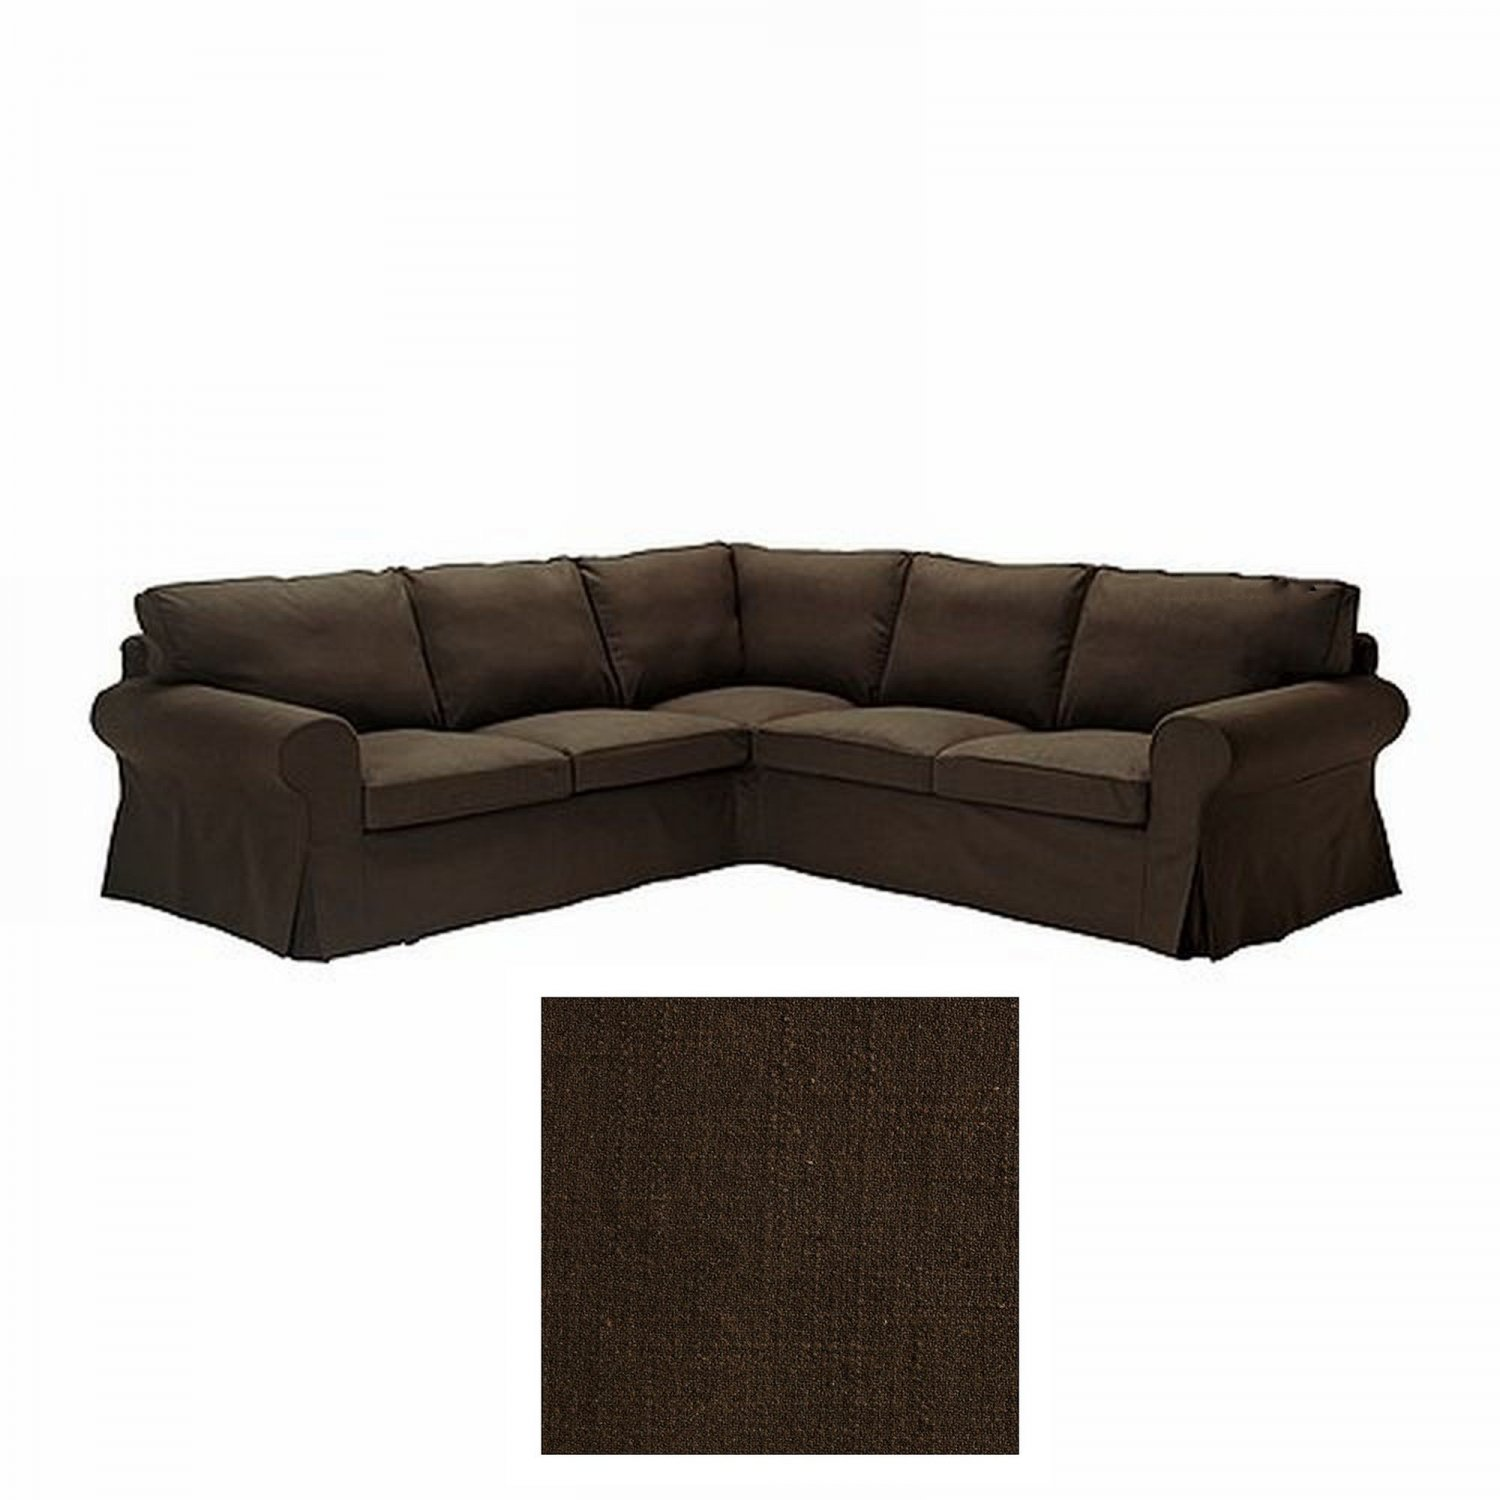 ikea ektorp 2 2 corner sofa cover slipcover svanby brown linen blend 4 seat sectional cvr. Black Bedroom Furniture Sets. Home Design Ideas